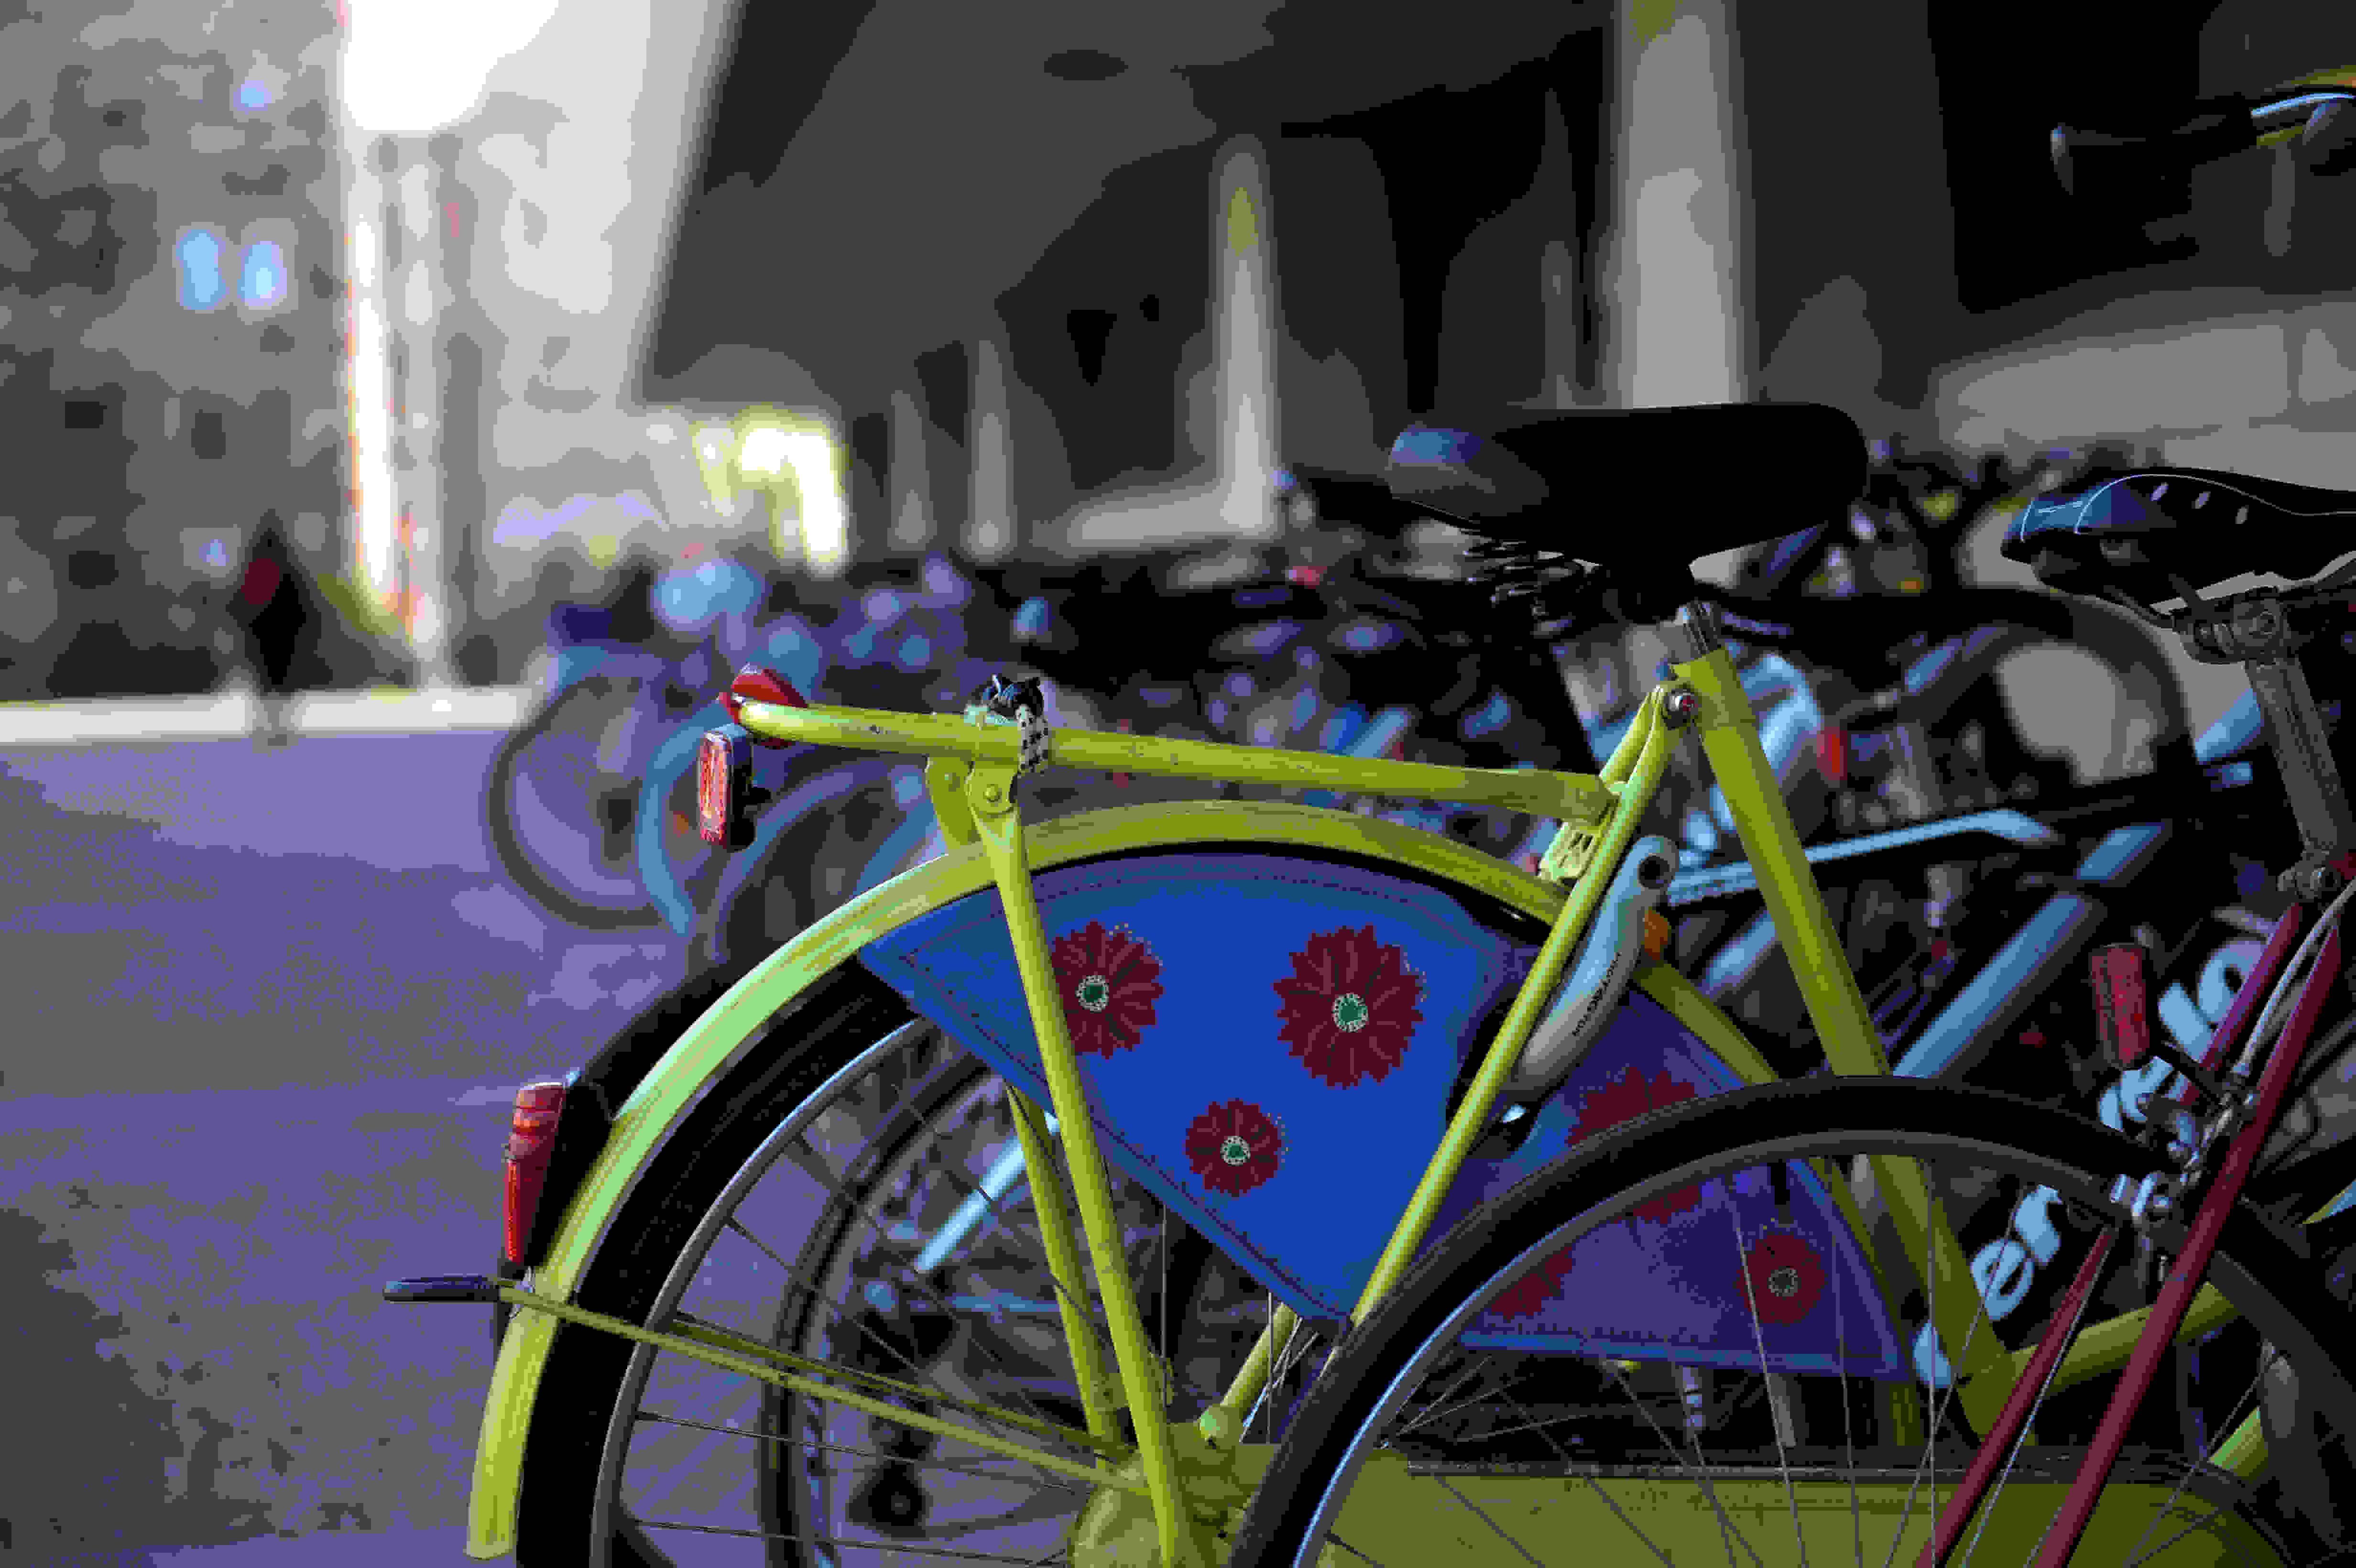 MIT kids apparently like their bikes, and the Nikon D4S likes its shallow depth of field.